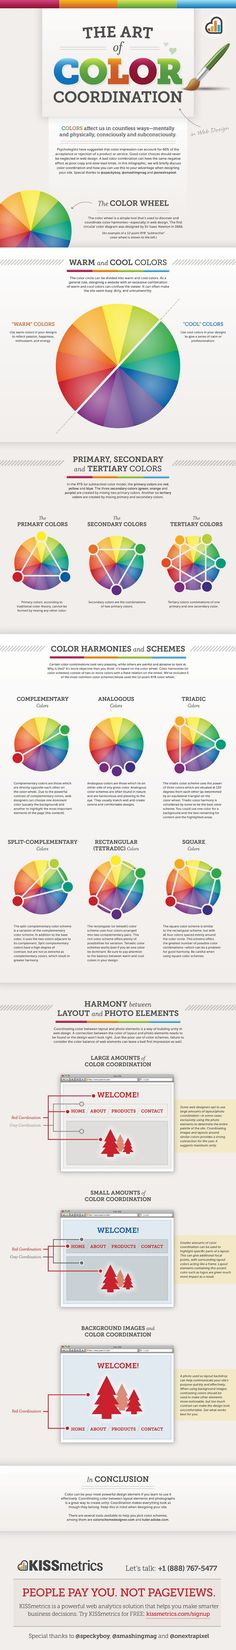 How colors impacts a viewers perception and how you can use certain color layouts for greater impact with your web site design.